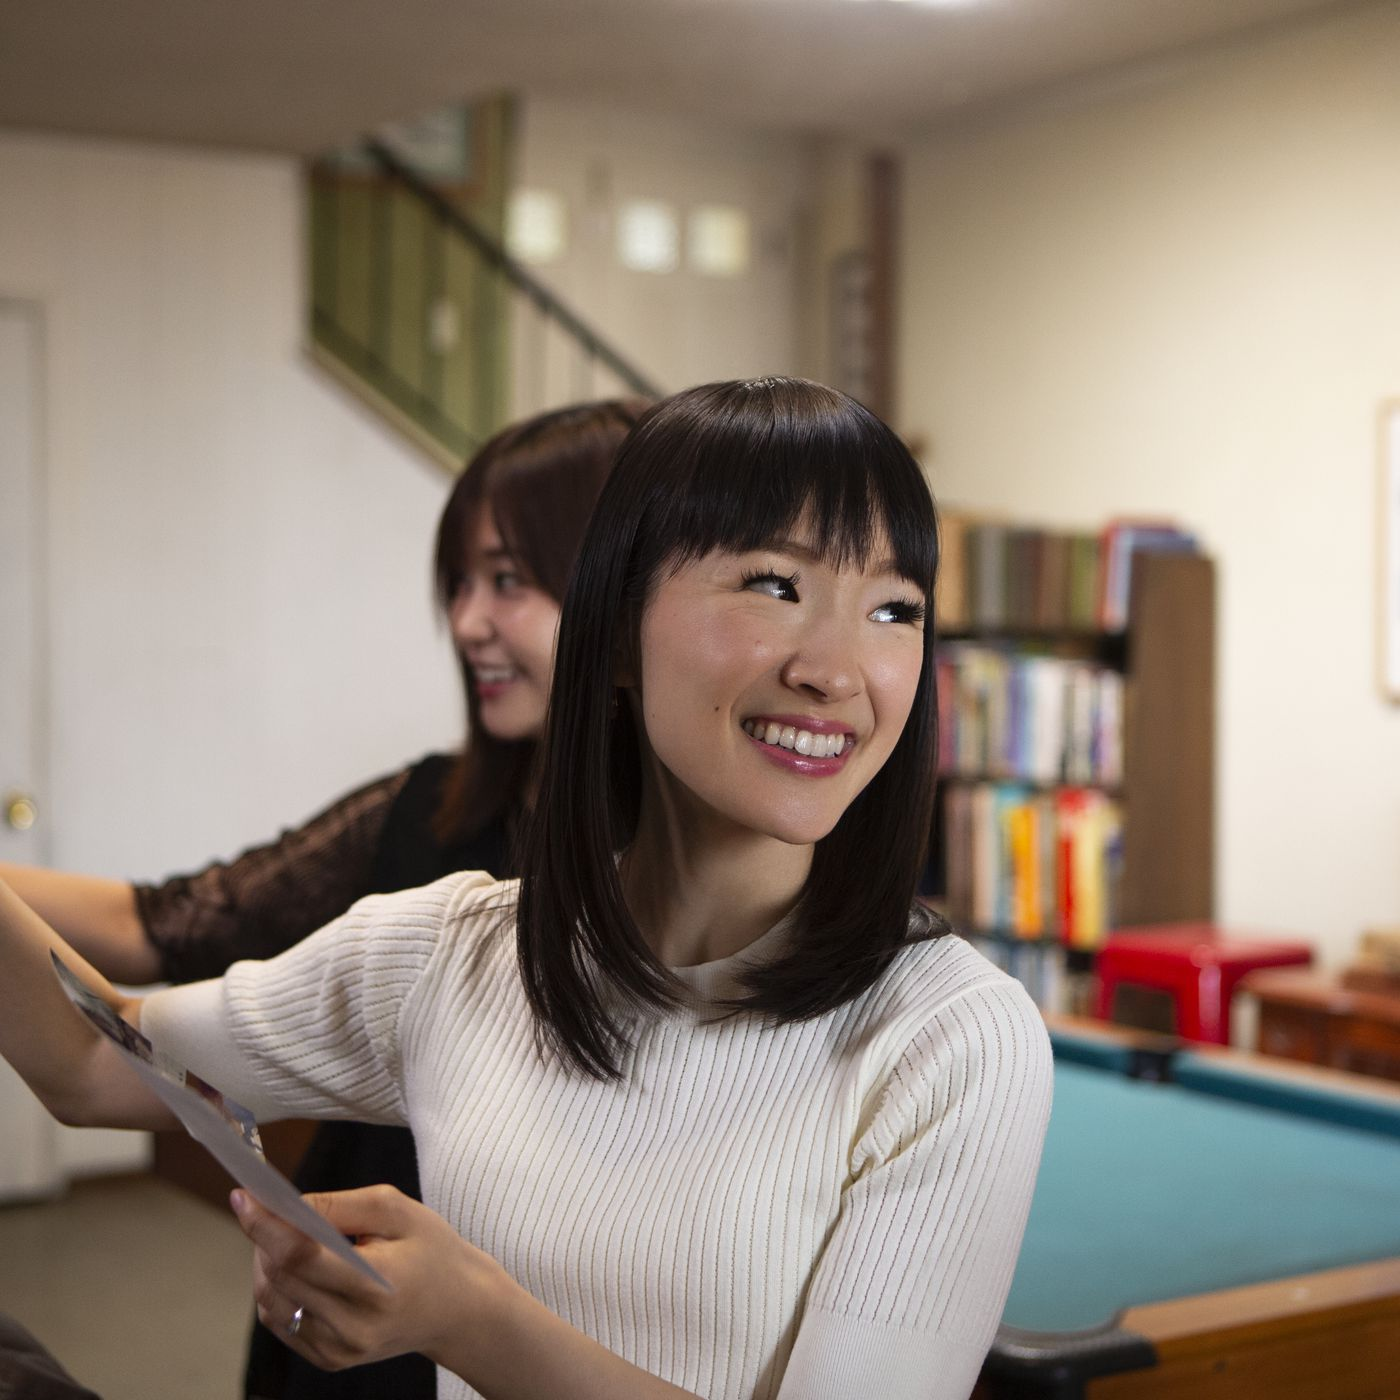 Tidying Up With Marie Kondo Netflix S New Star Explained Vox